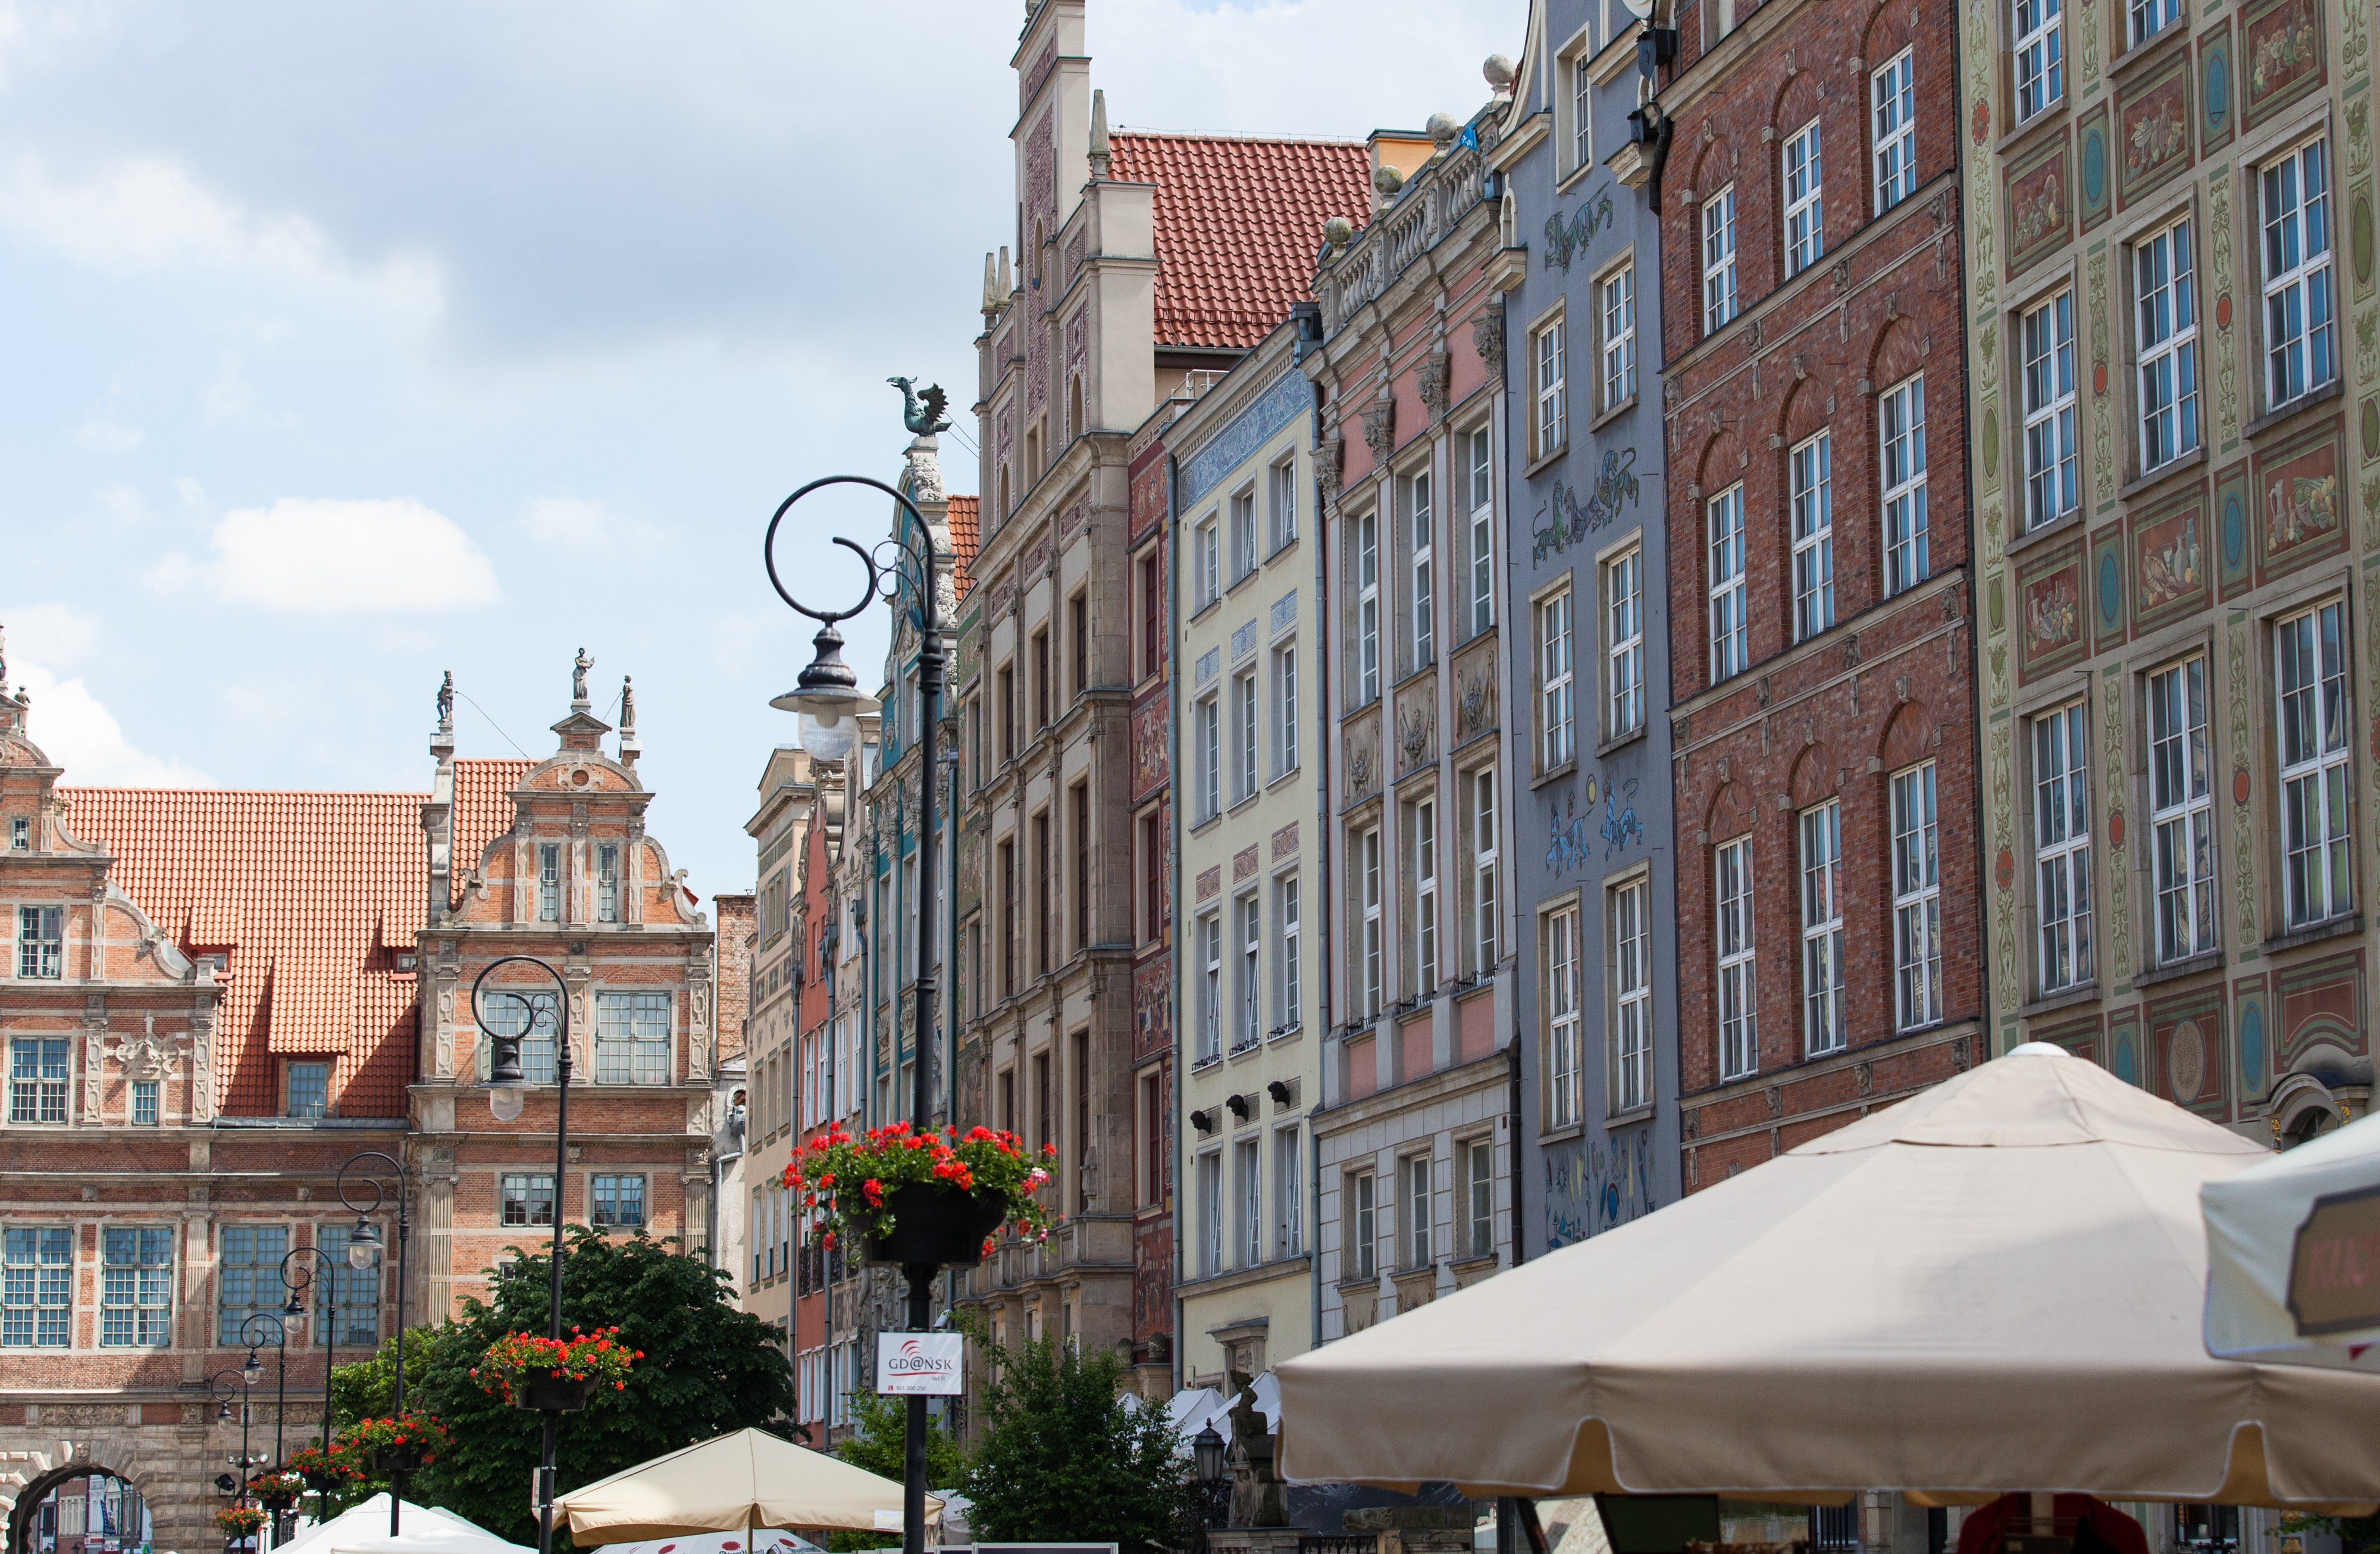 Gdansk city, Poland, June 2014, picture 13